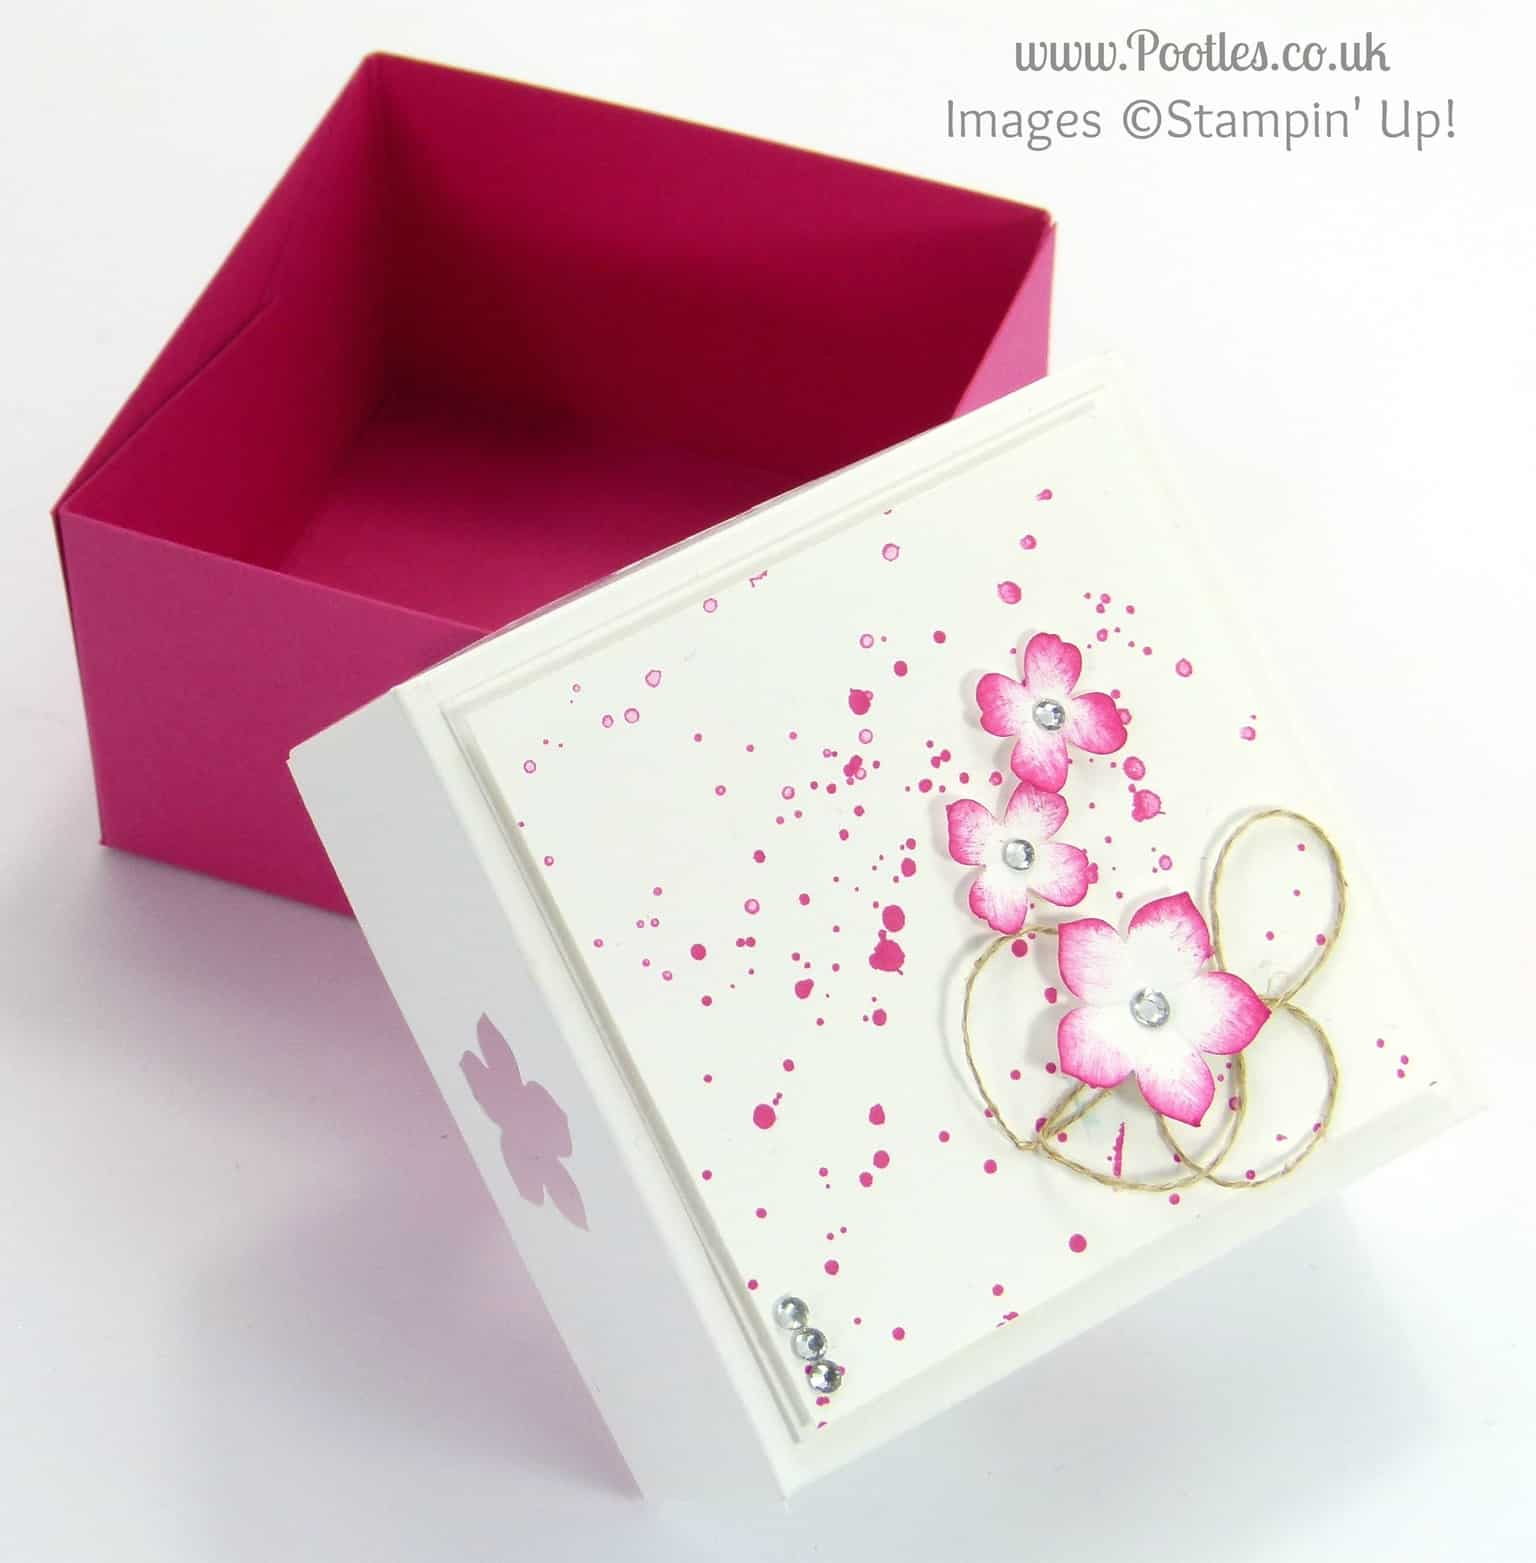 3x3 Car Box for Swaps for US Stampin' Up! Convention 2014 Tutorial Open